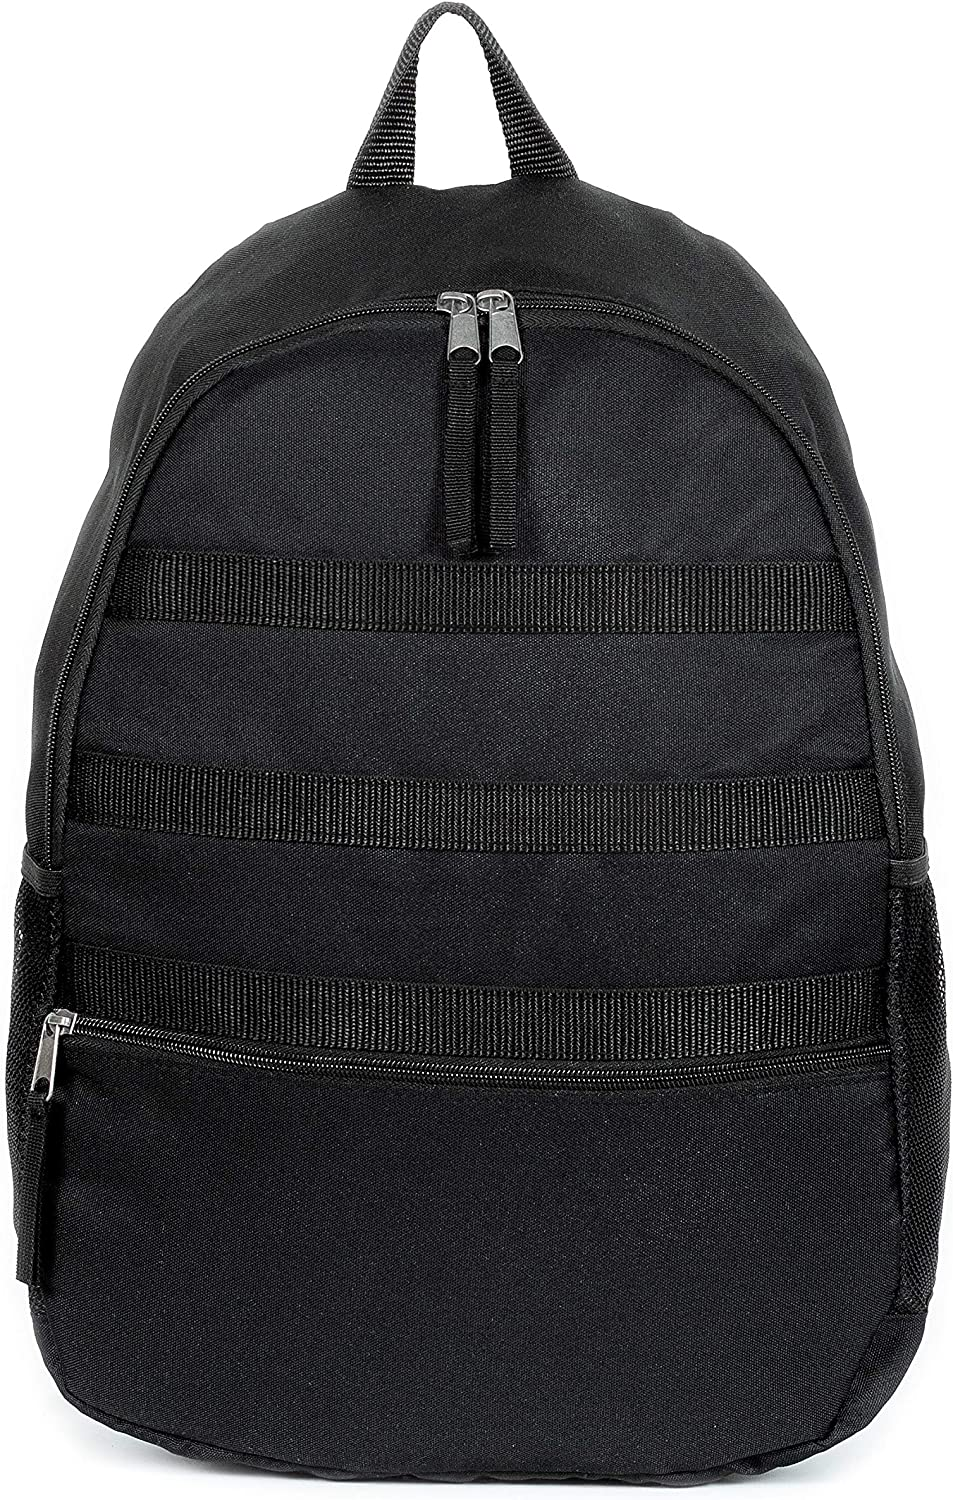 Jackson Men Women Unisex Tommy Urban Compact Gym Bag Backpack Black